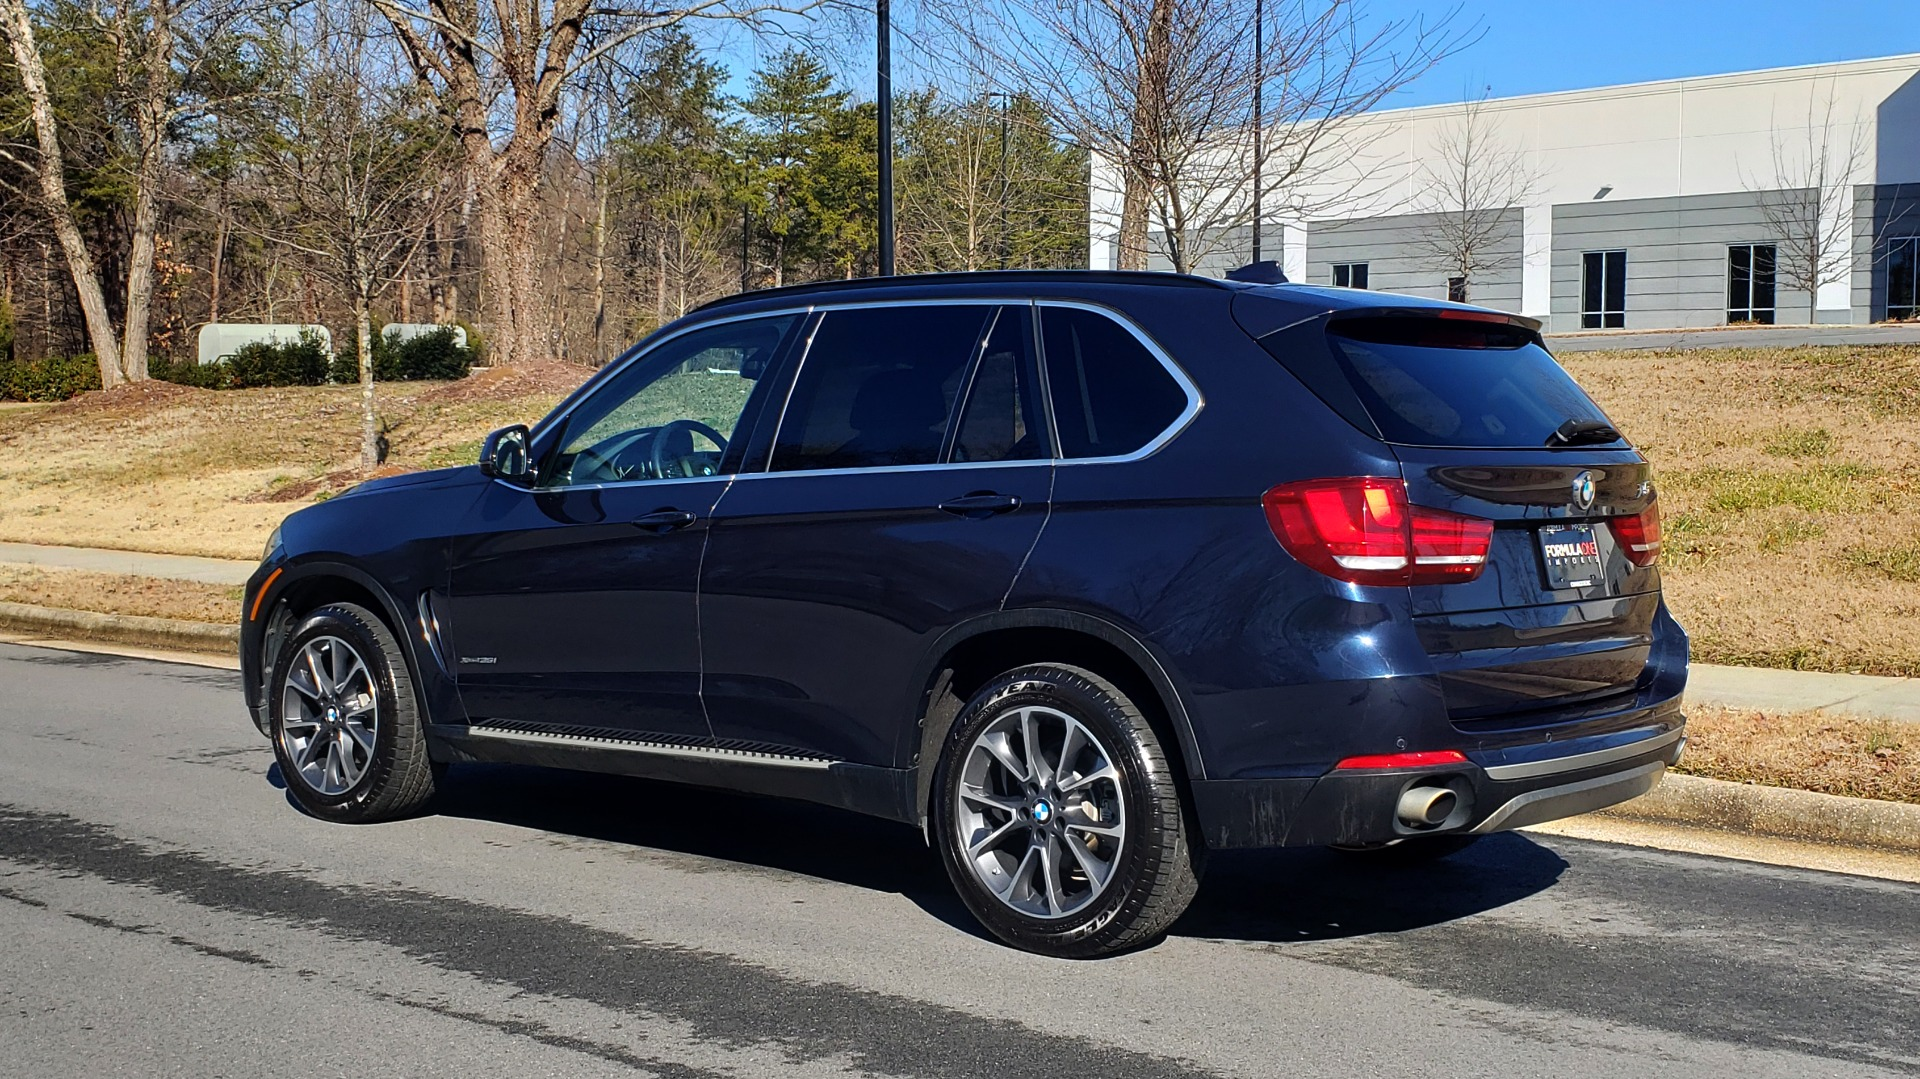 Used 2015 BMW X5 XDRIVE35I PREMIUM / NAV / XLINE / CLD WTHR / DRVR ASST / REARVIEW for sale $24,995 at Formula Imports in Charlotte NC 28227 4